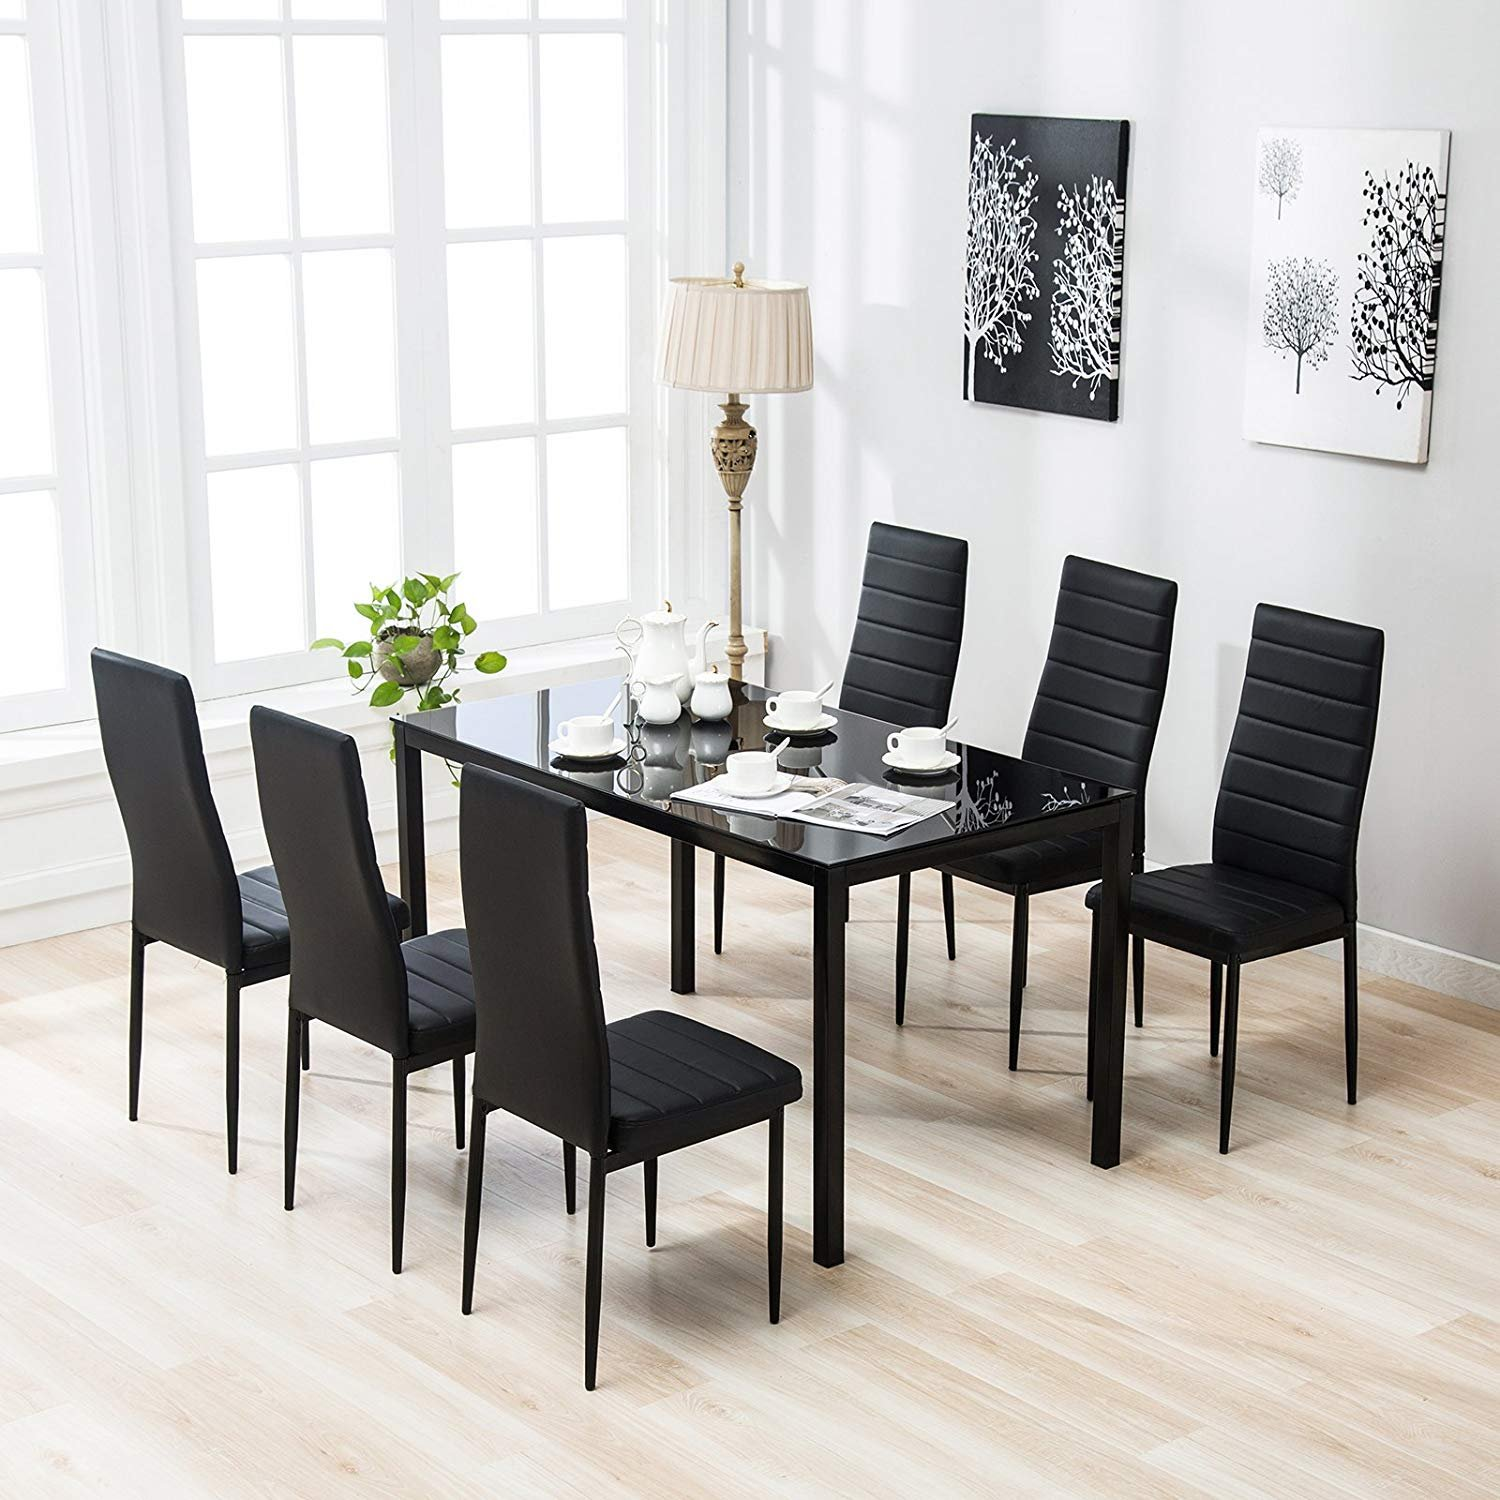 Glass Dining Table And Chairs Zimtown 7 Pcs Glass Dining Table Set With 6 Leather Chairs Kitchen Room Furniture Black